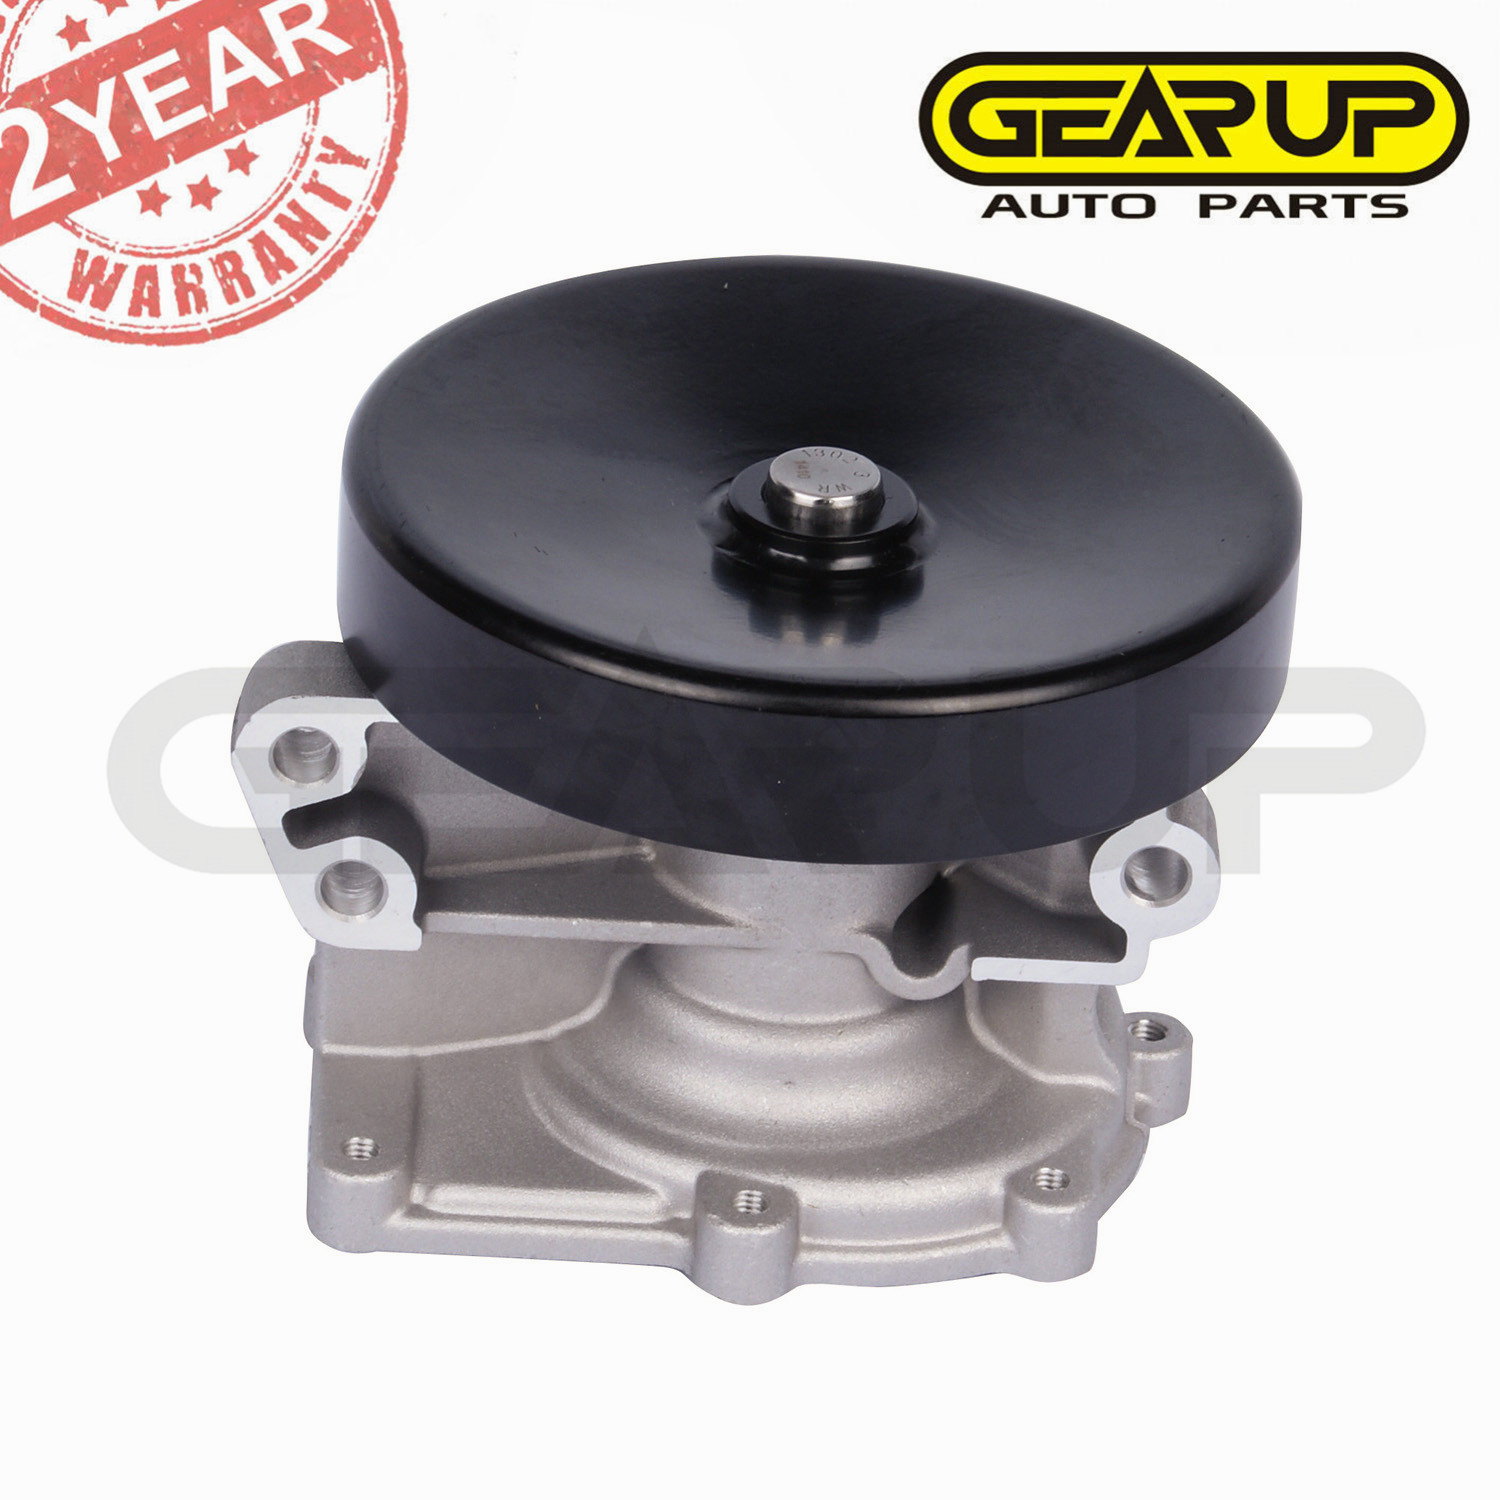 New Engine Water Pump Premium Fit 1999-2009 Saab 9-5 9-3 900 2.0L 2.3L Turbo